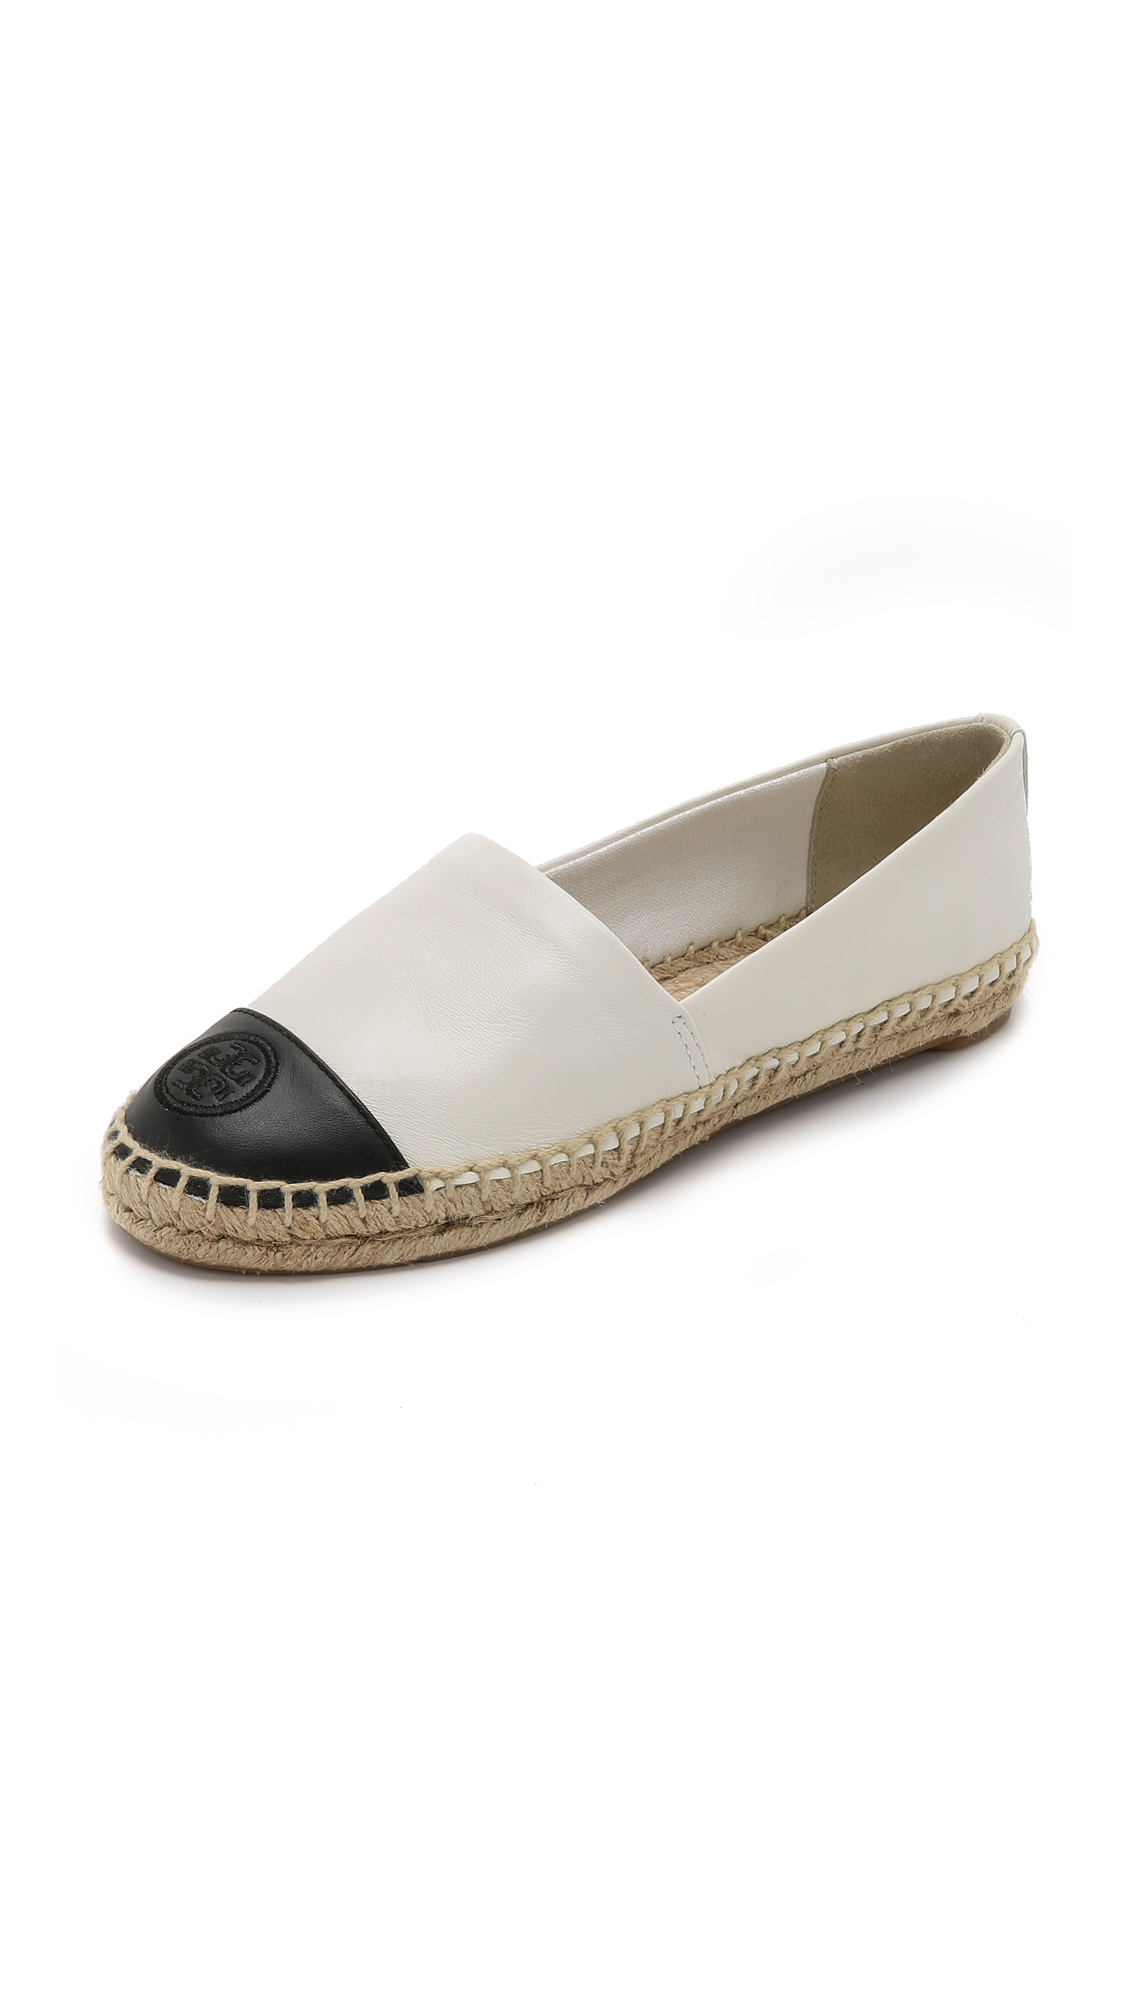 Ivory/Black Tory Burch Colorblock Espadrilles Online shop